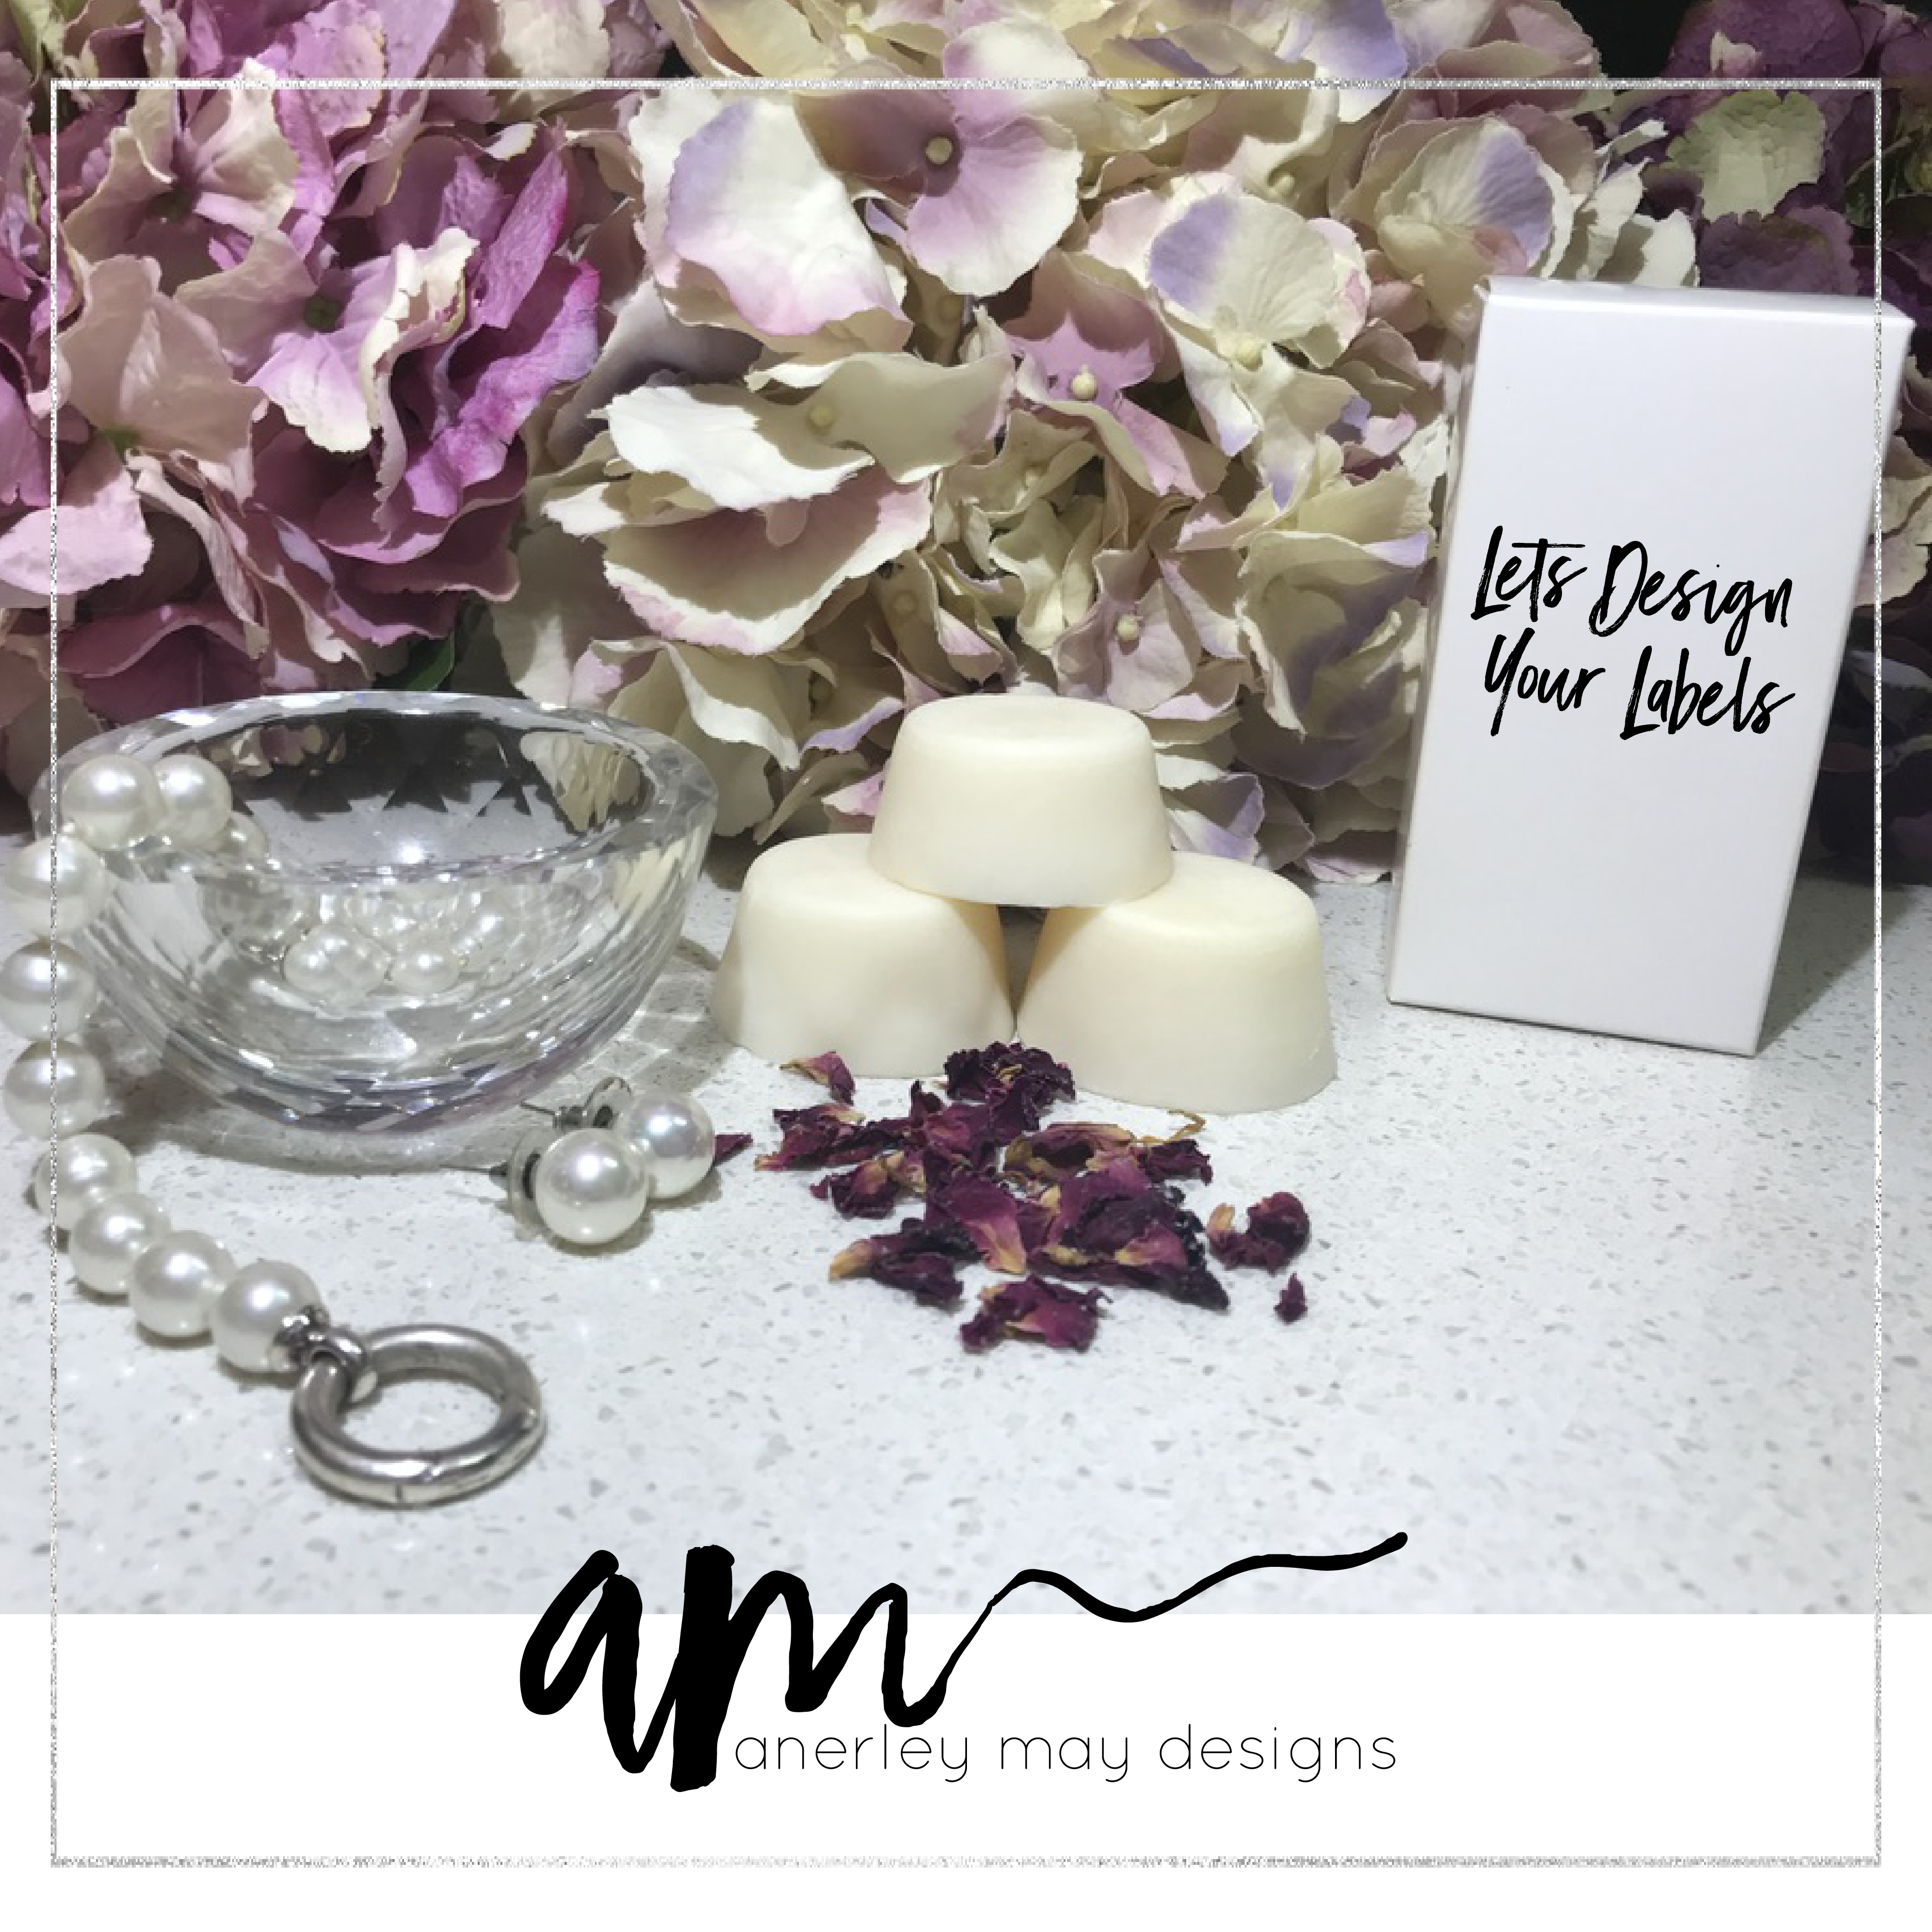 LUXE MELTS ANERLEY MAY DESIGNS-01